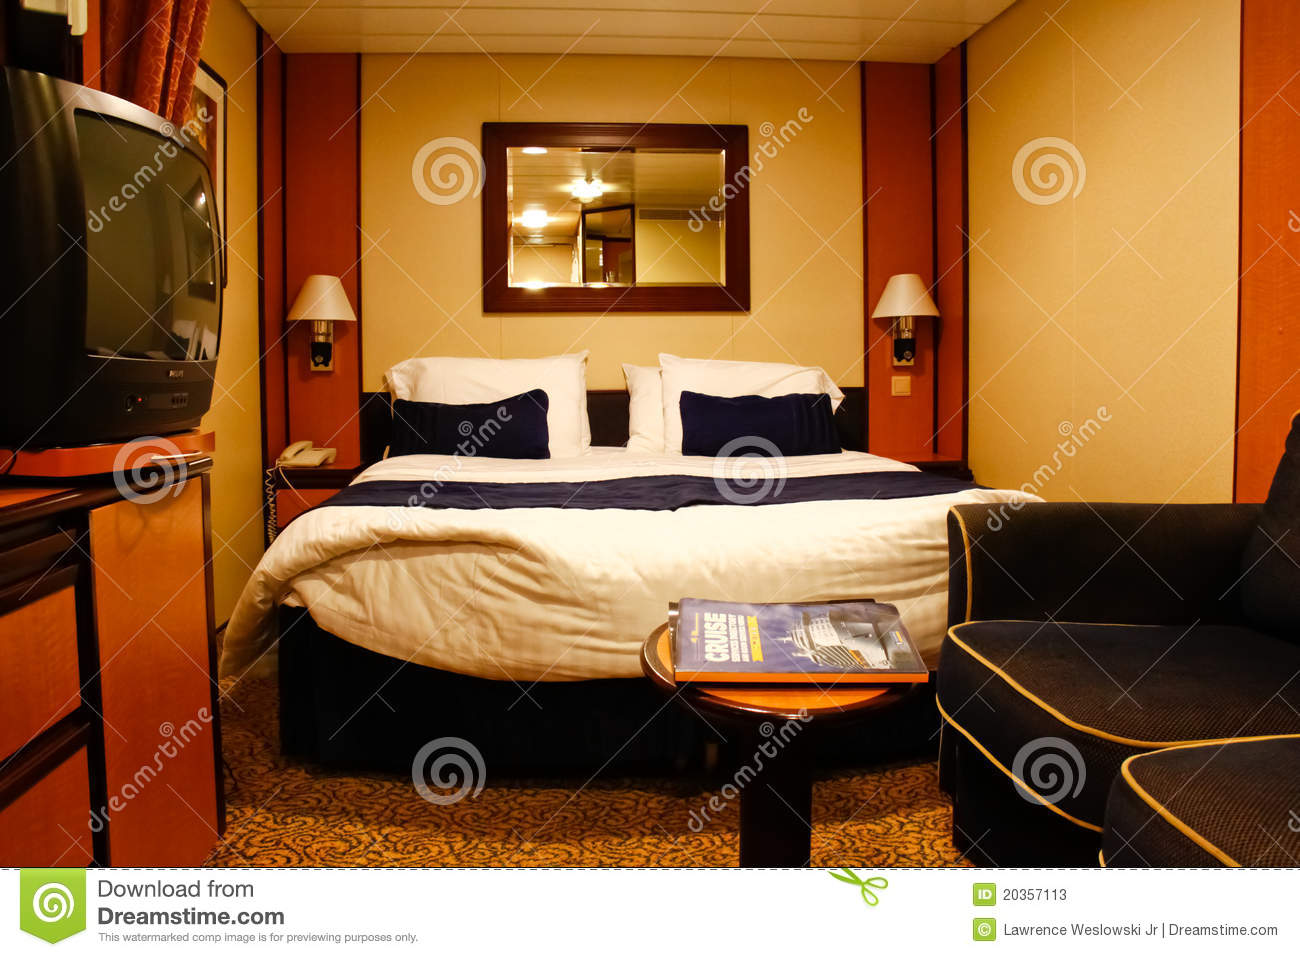 Cruise Ship Inside Cabin Stateroom Editorial Stock Photo - Image: 20357113